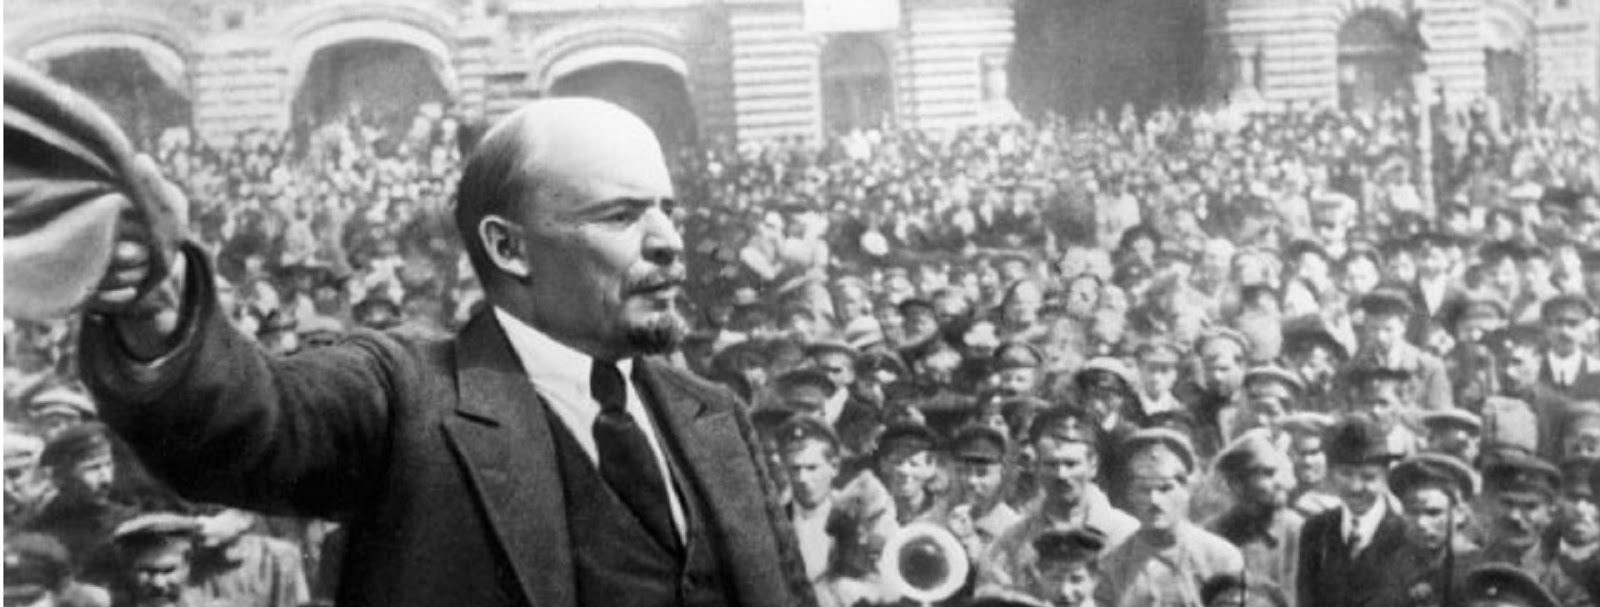 april theses lenin analysis What did lenin's april thesis promise he set out his analysis of where russian politics should develop in his famous april theses published in the.